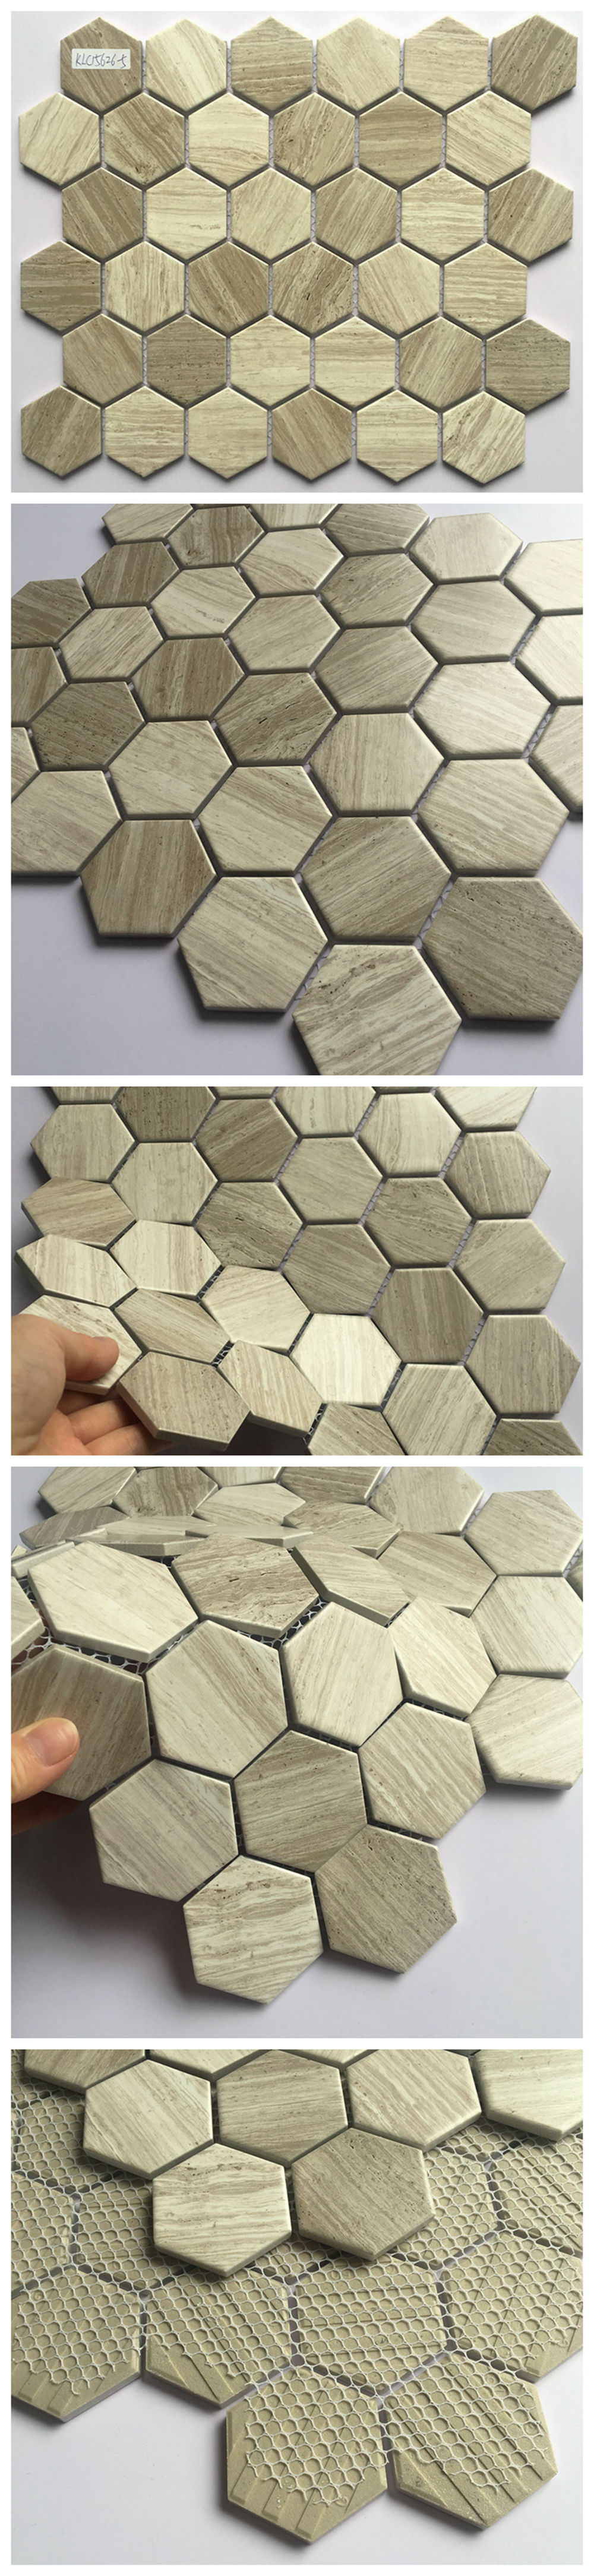 Hot selling grey color hexagonal ceramic mosaic porcelain tile for bathroom and kitchen Foshan China